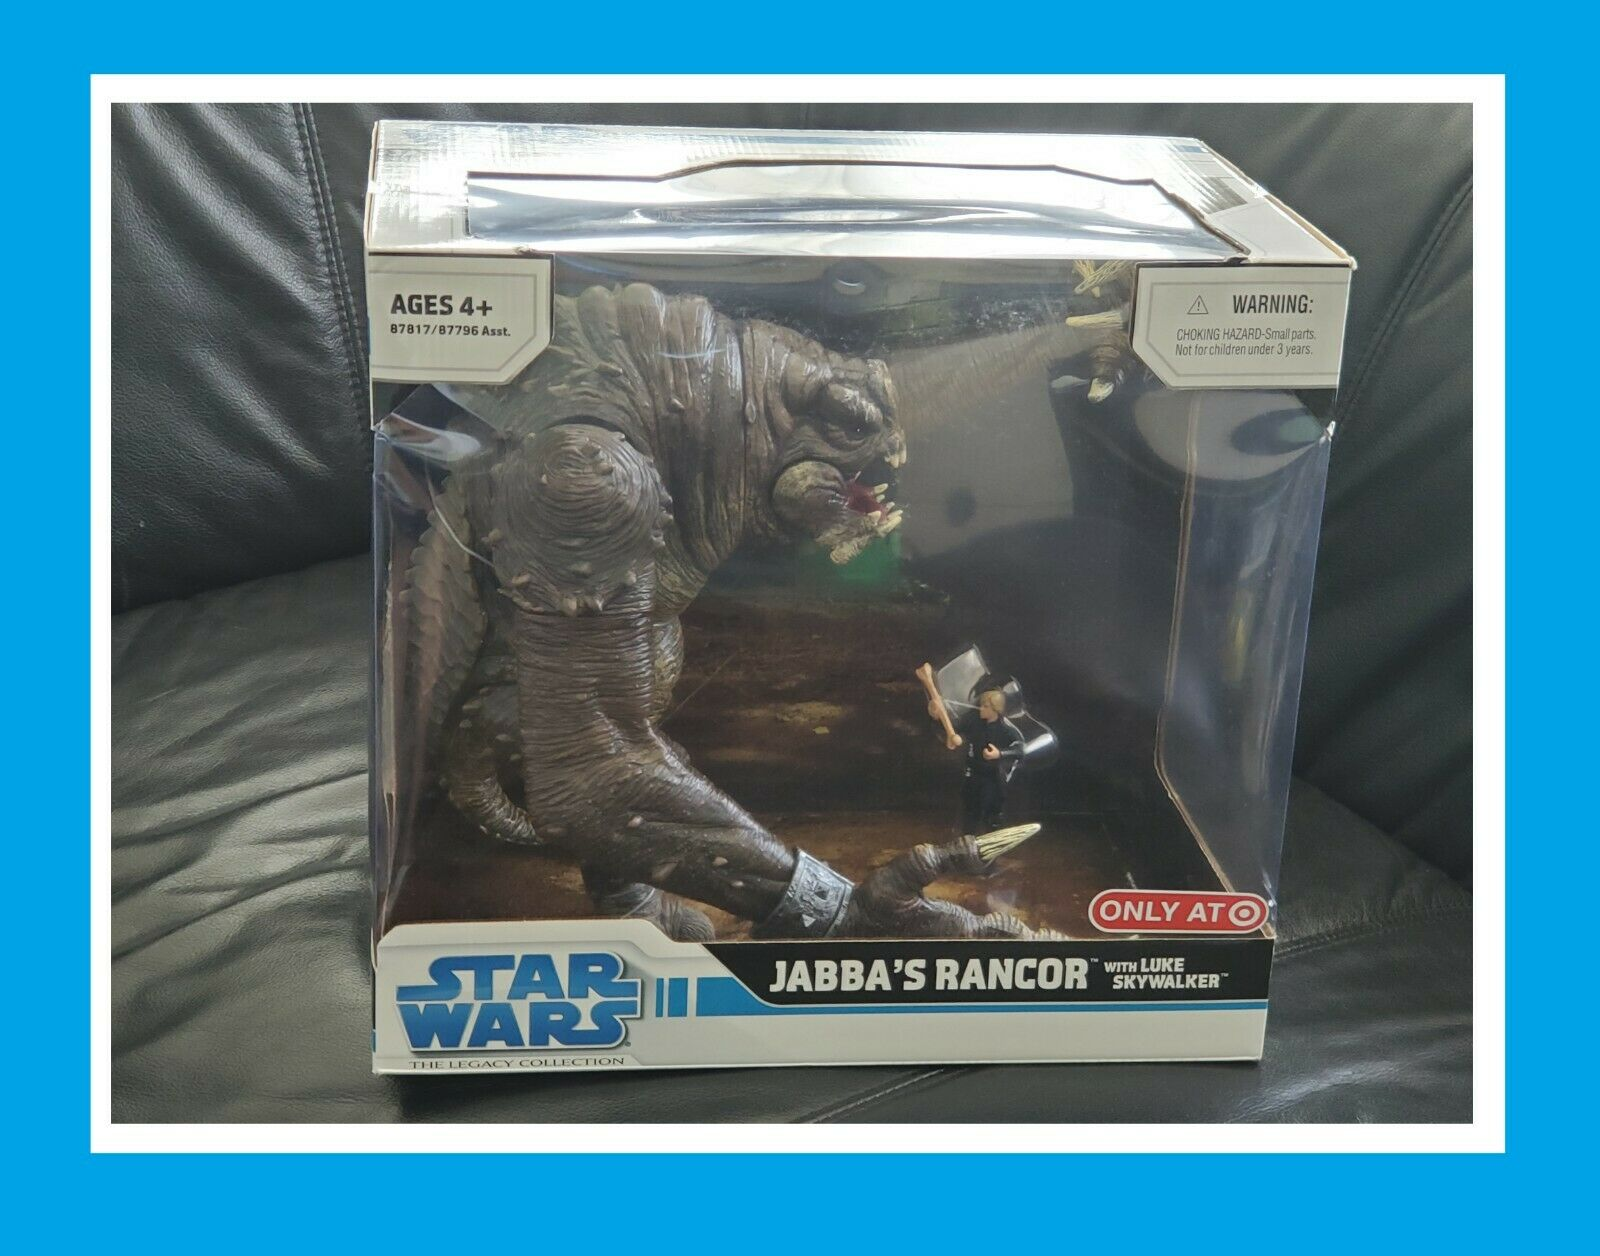 HASBRO estrella guerras THE LEGACY COLLECTION JABBA'S RANCOR WITH LUKE  cieloWALKER  divertiti con uno sconto del 30-50%